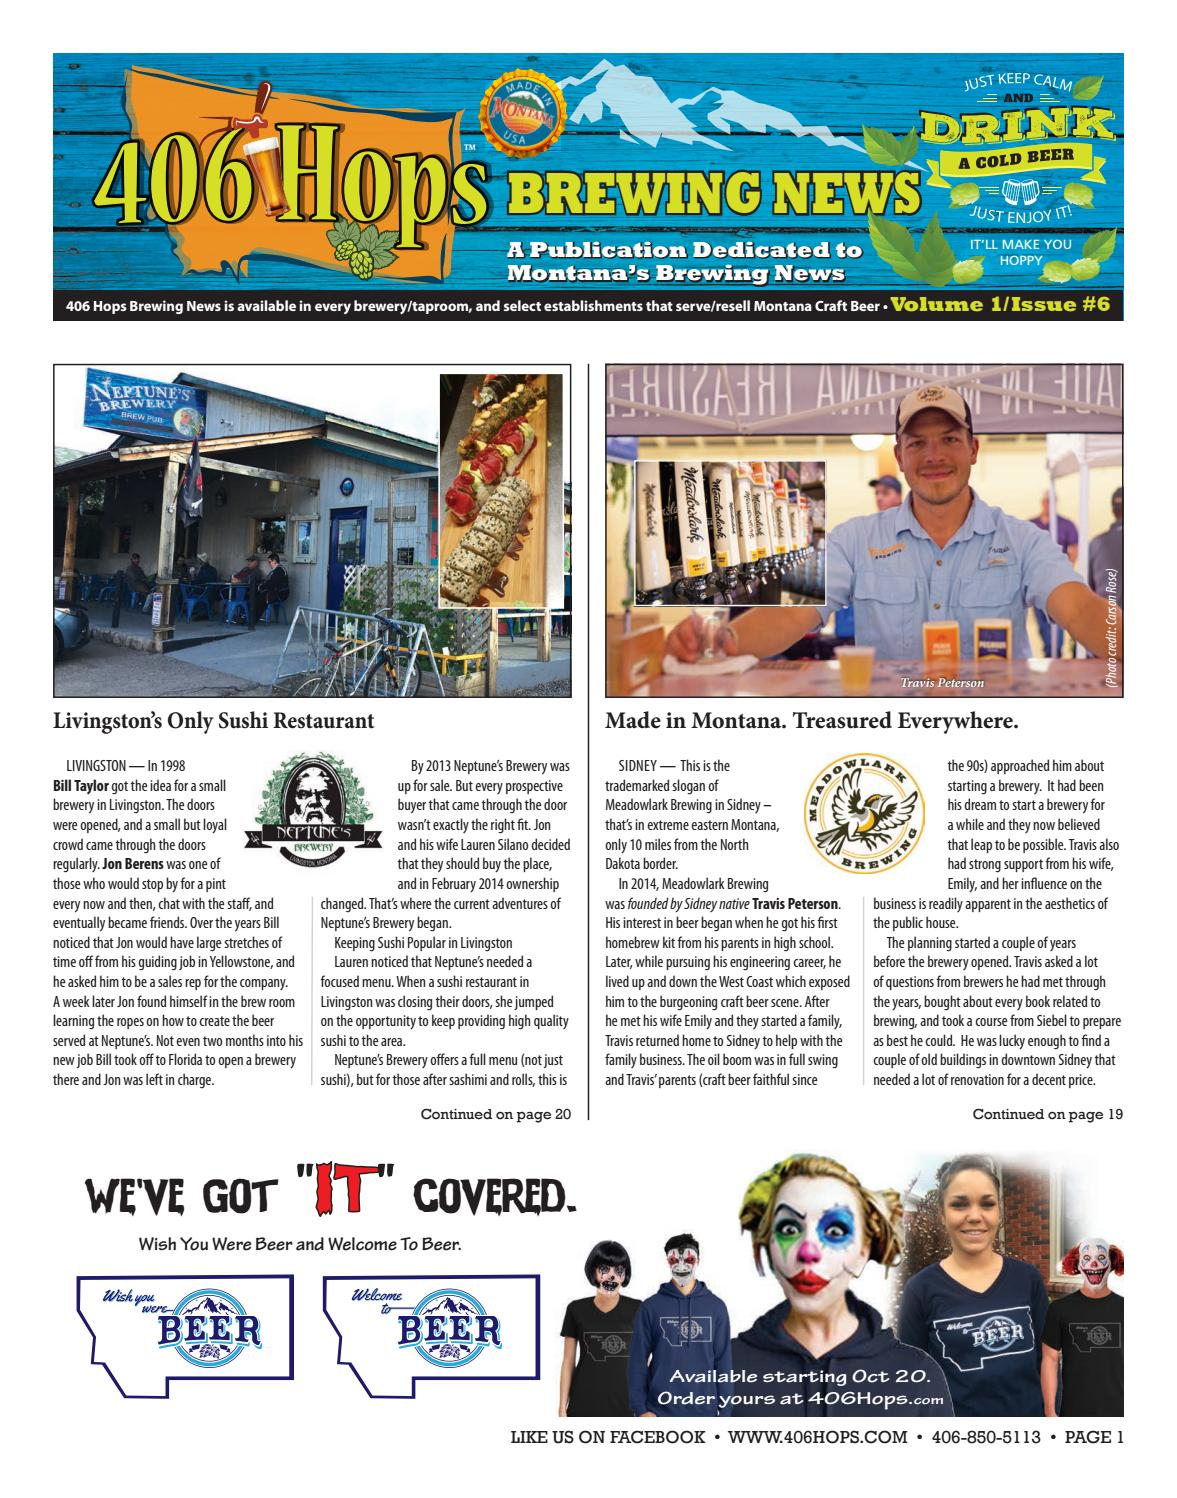 406 hops brewing news issue 6 by 406 hops brewing news issuu